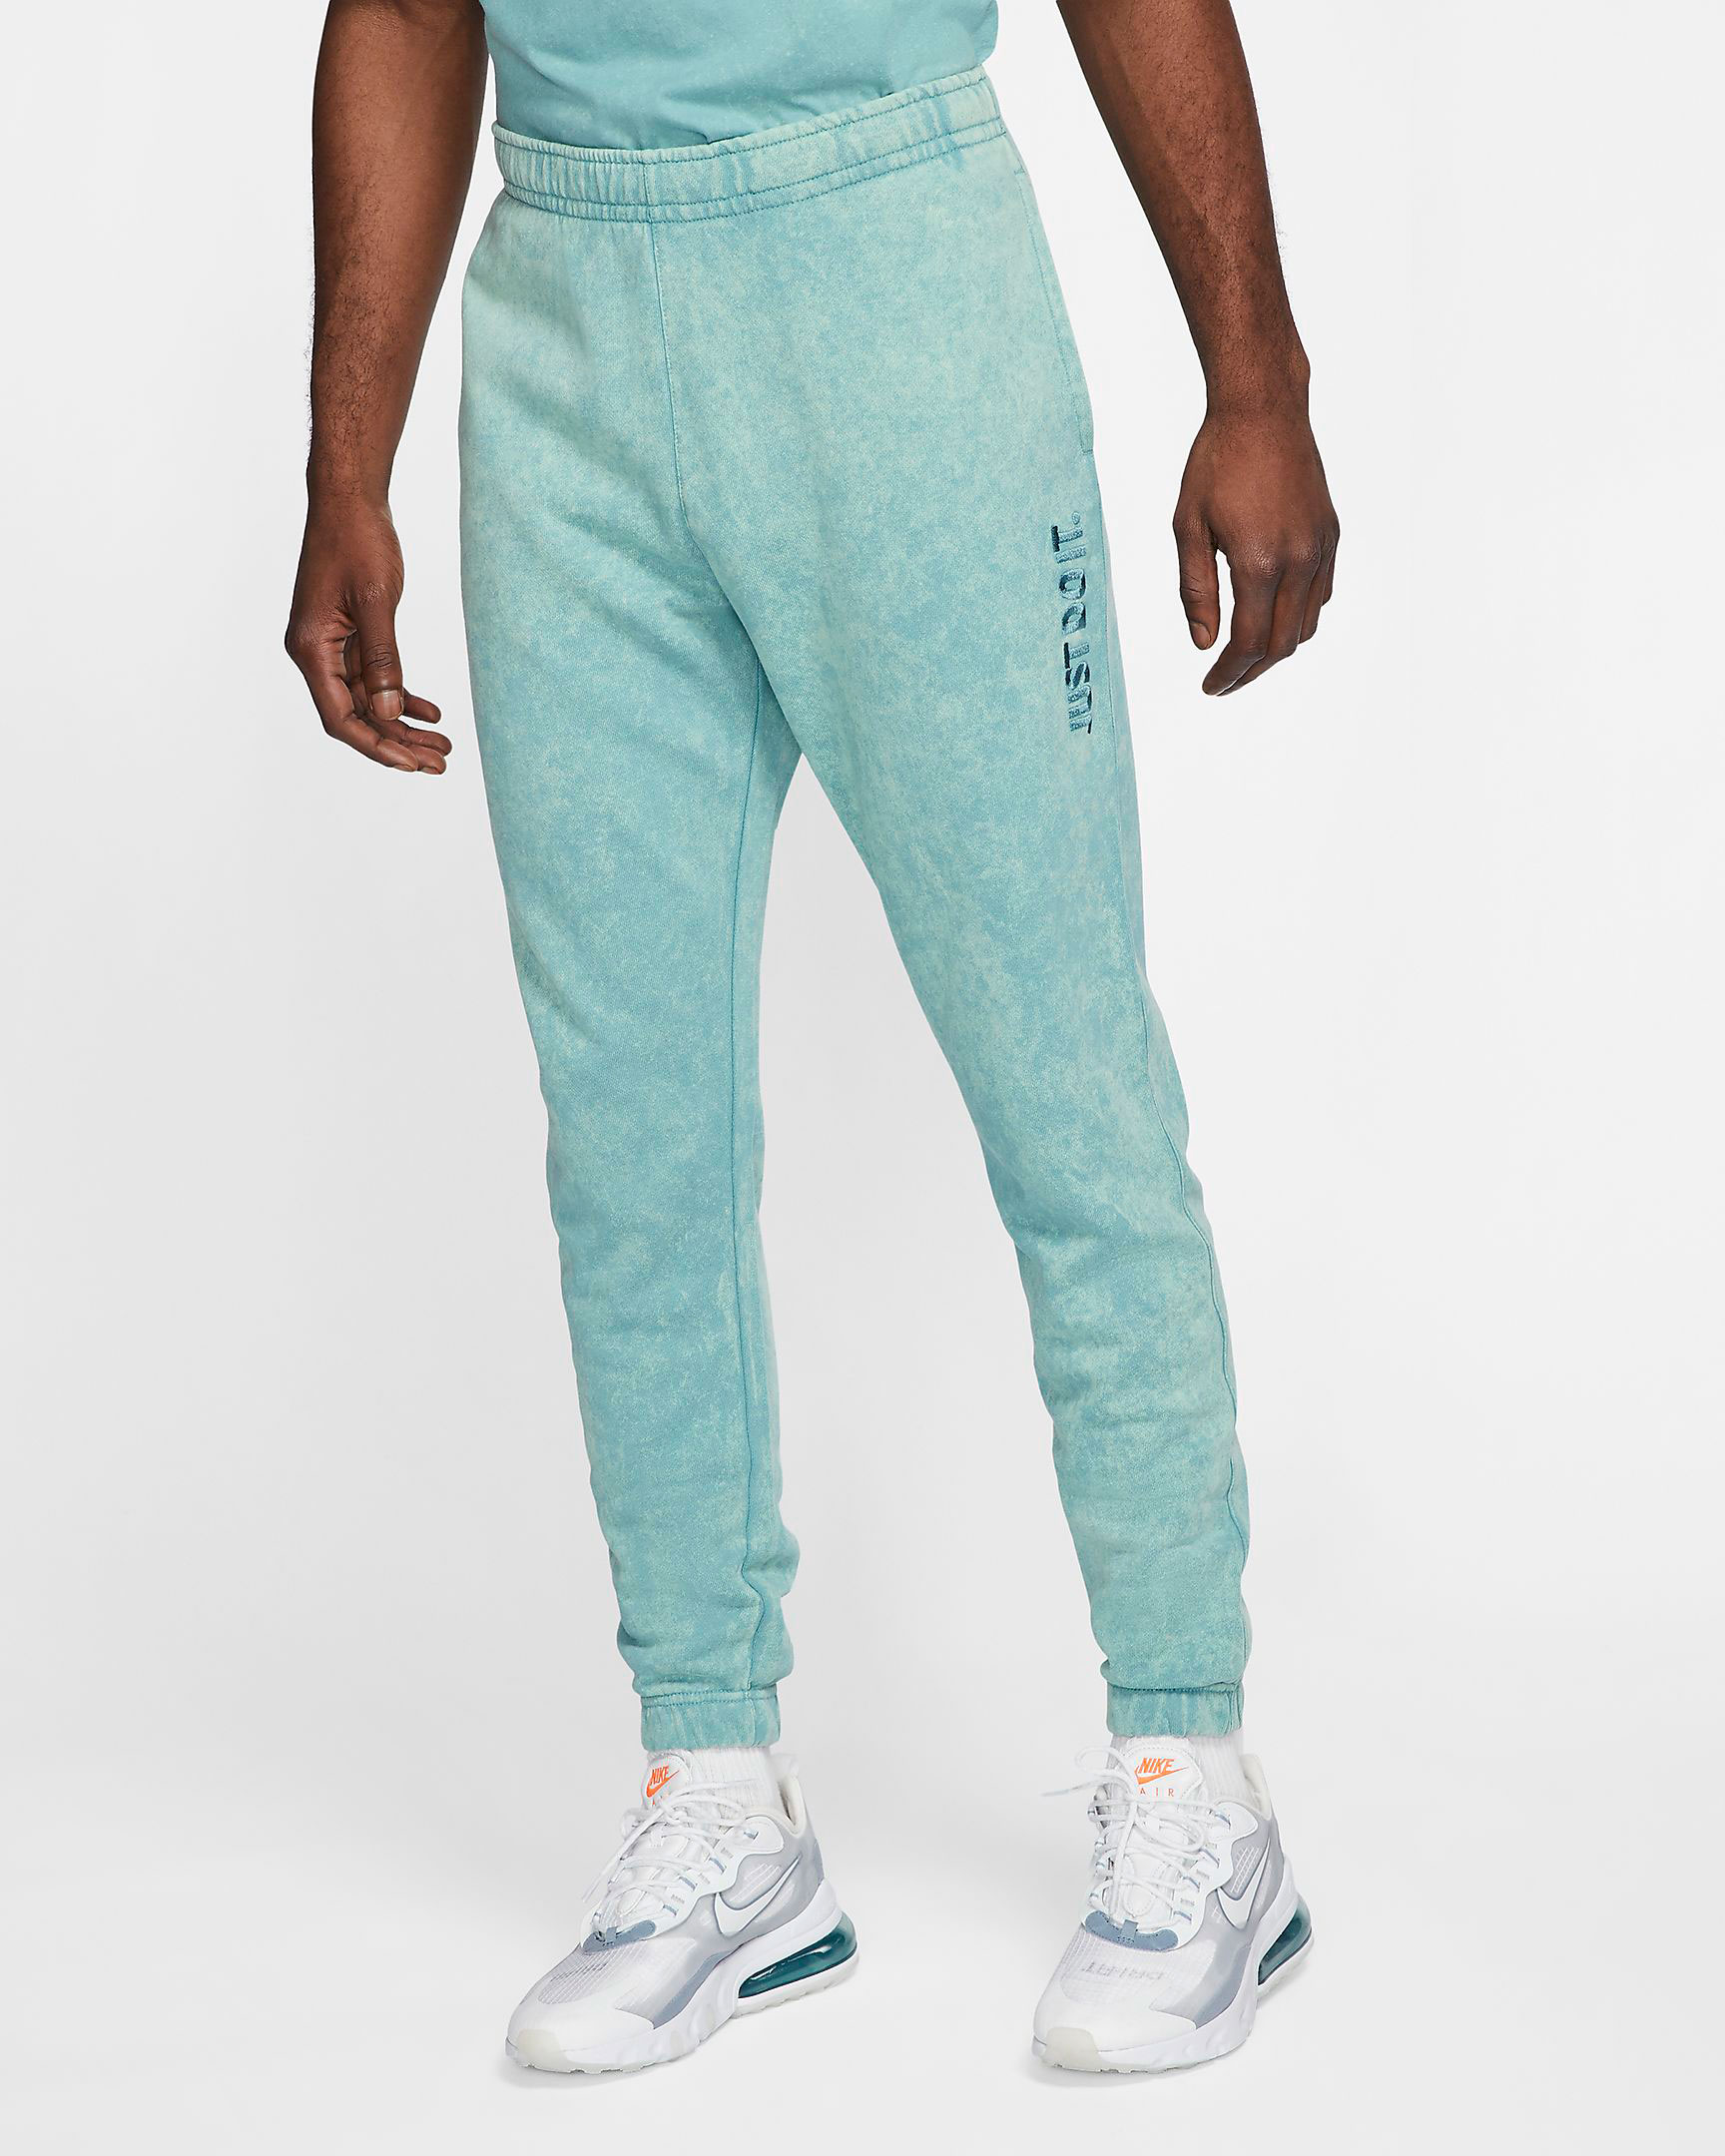 nike-adapt-auto-max-anthracite-green-jogger-pant-2